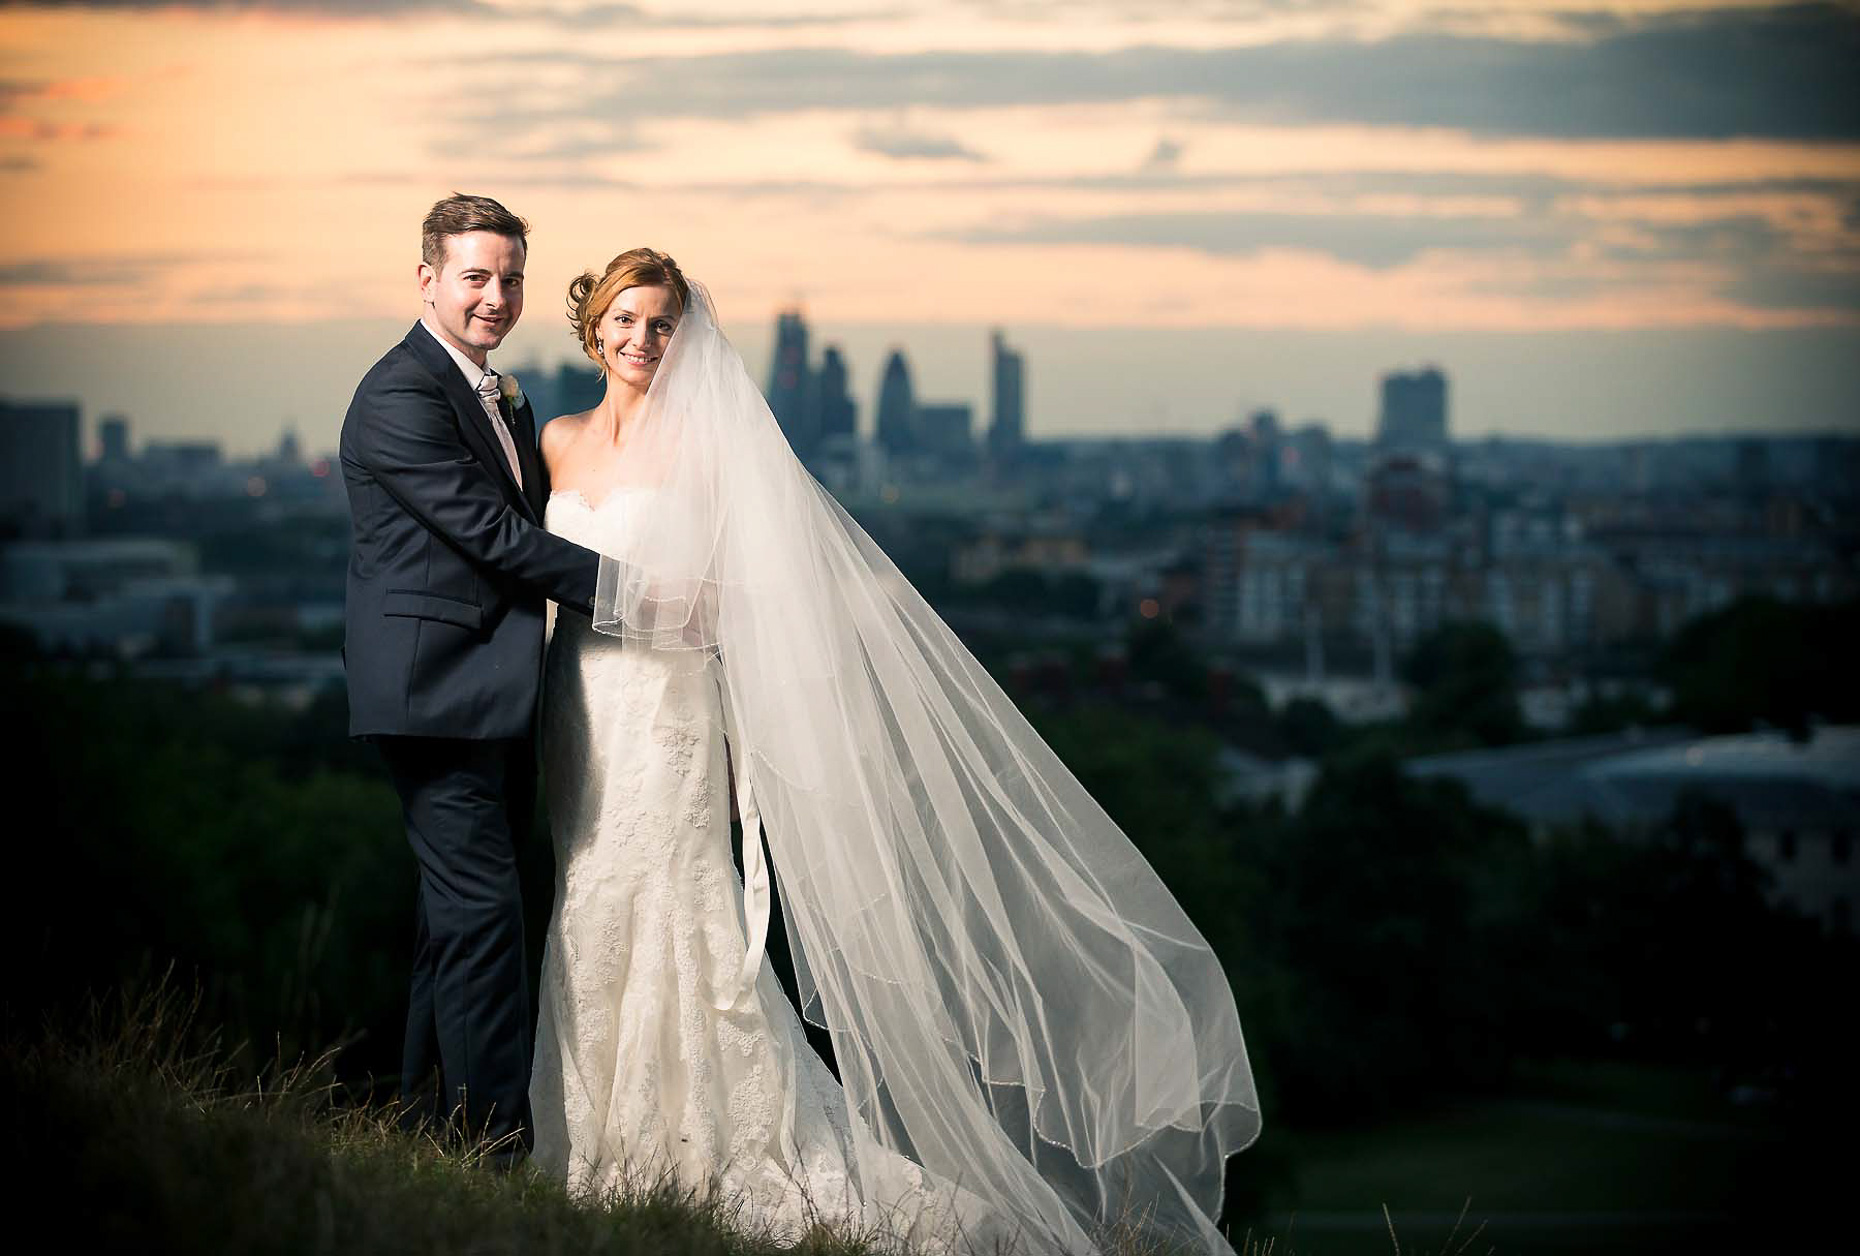 paul-olena-greenwich-park-sunset-london-views-wedding-02